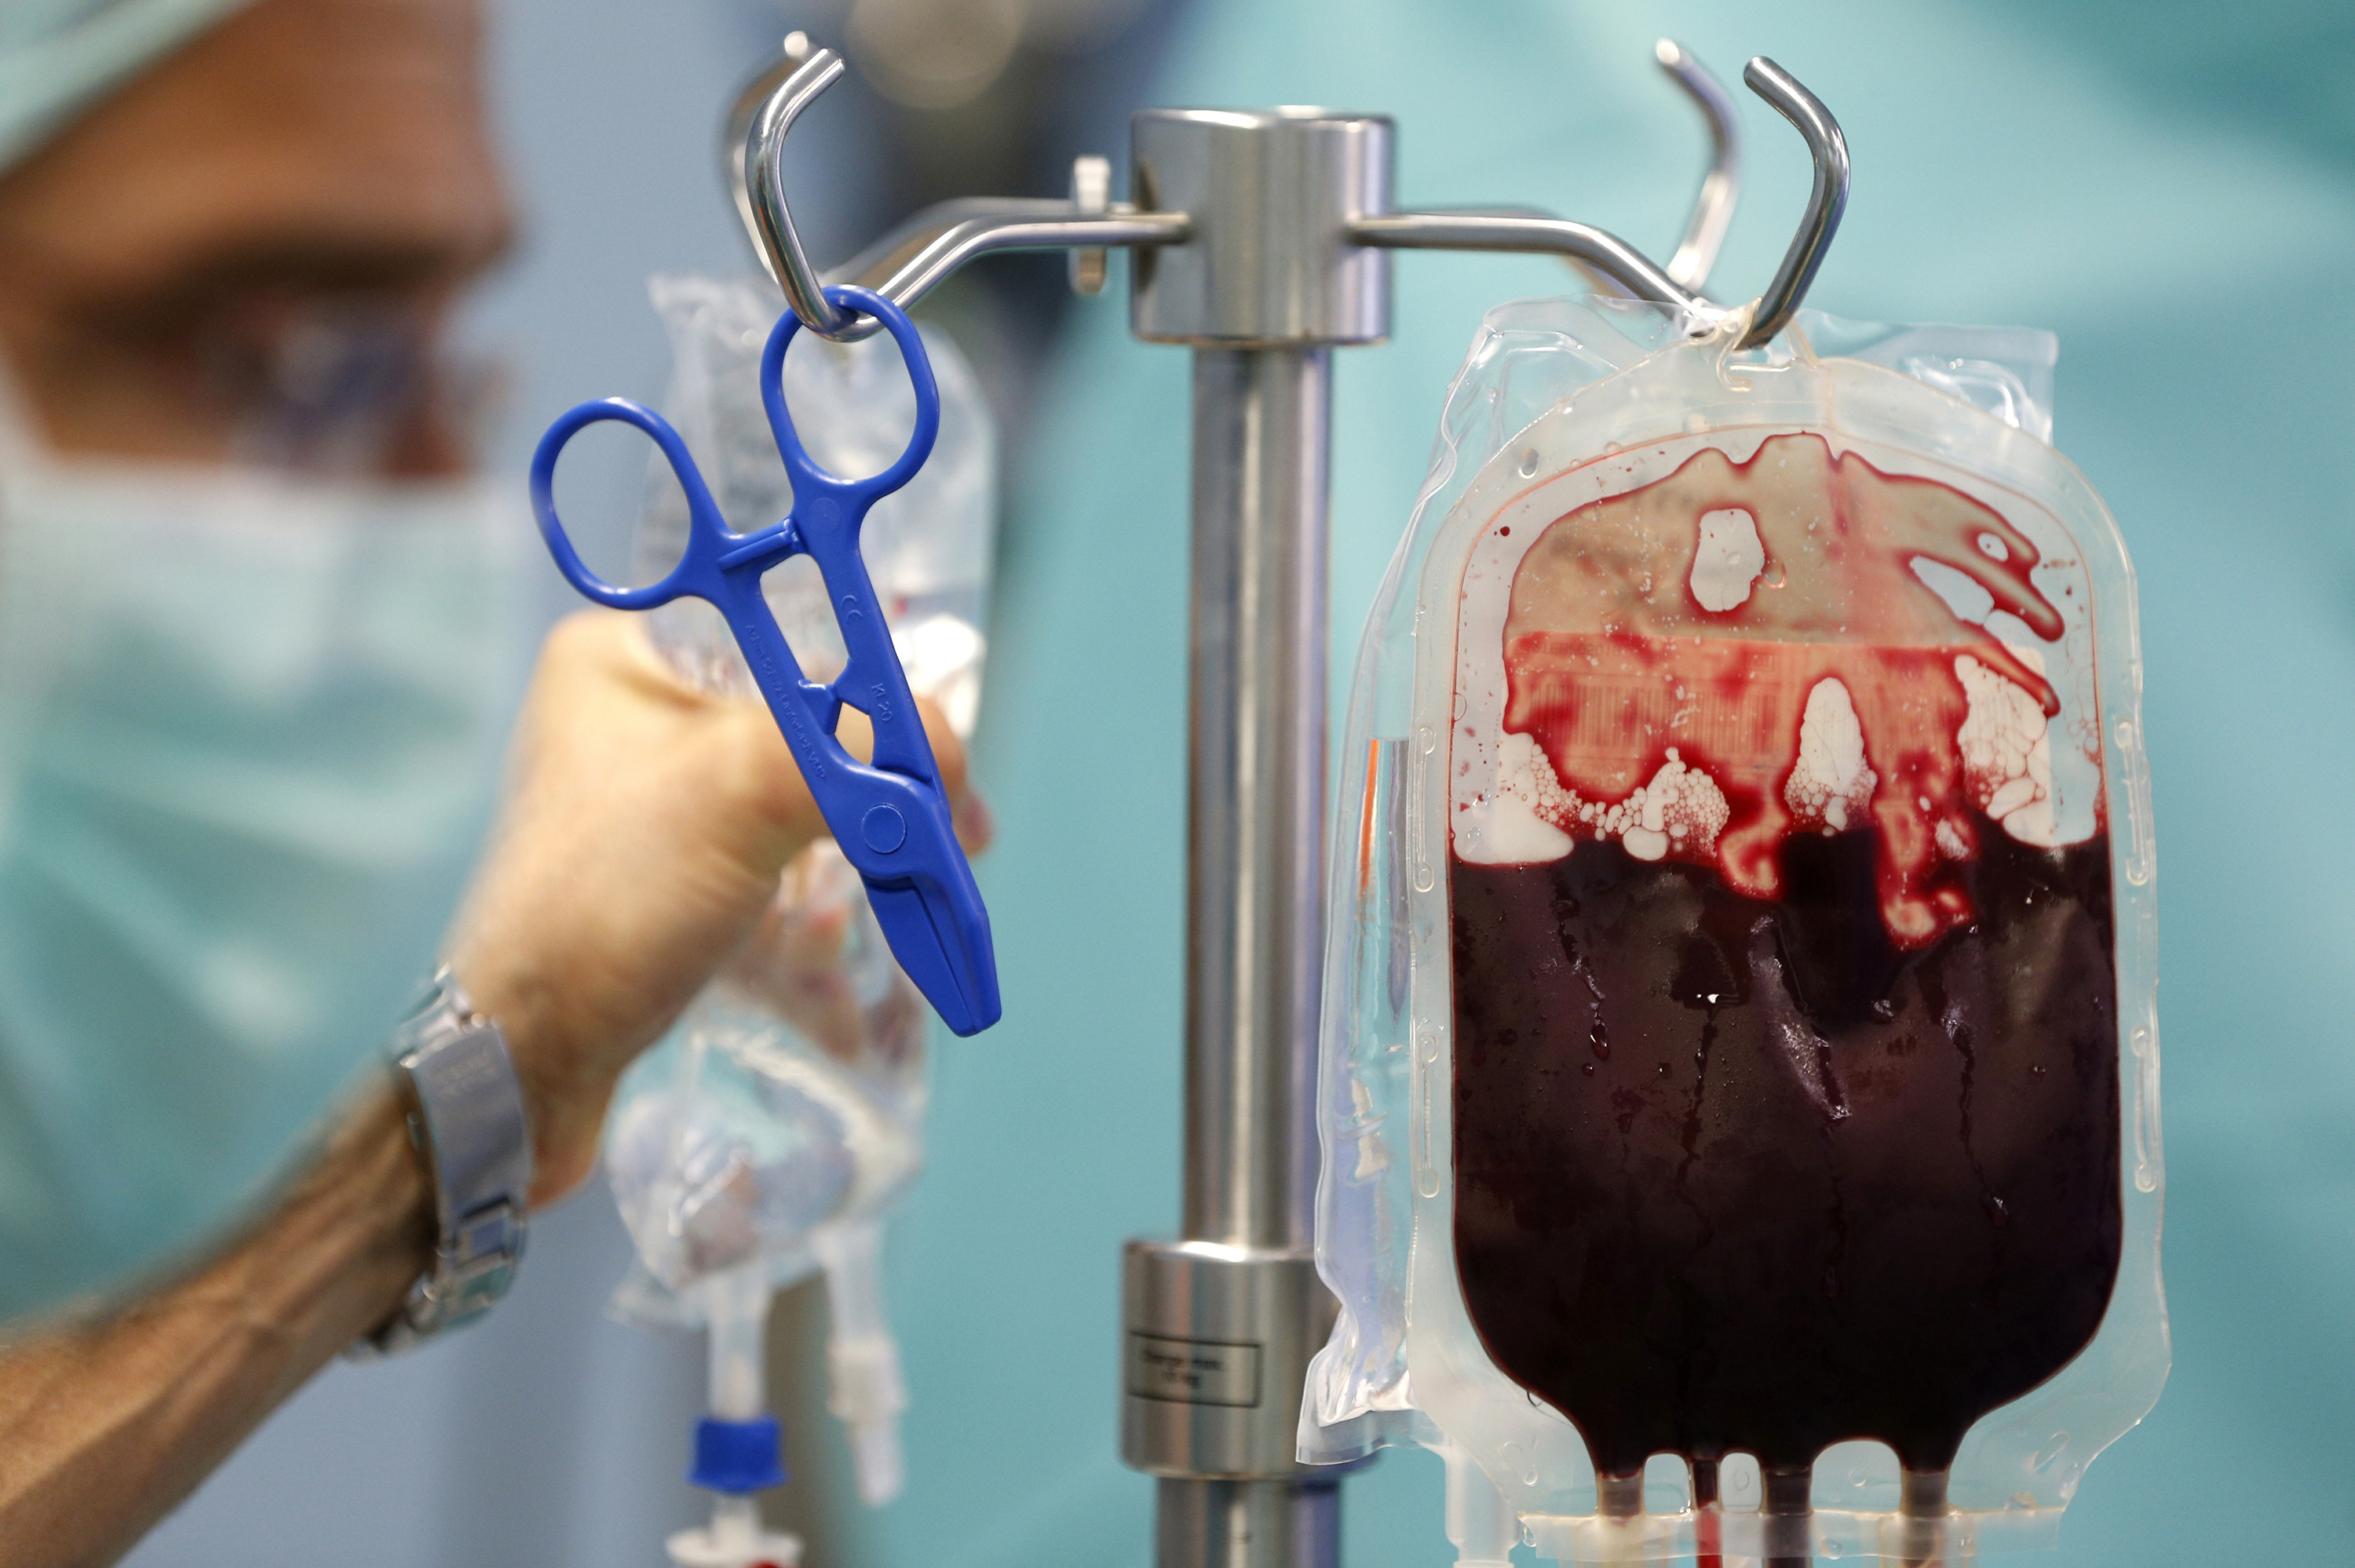 Hospitals Around The World Have A Dire Shortage Of Blood